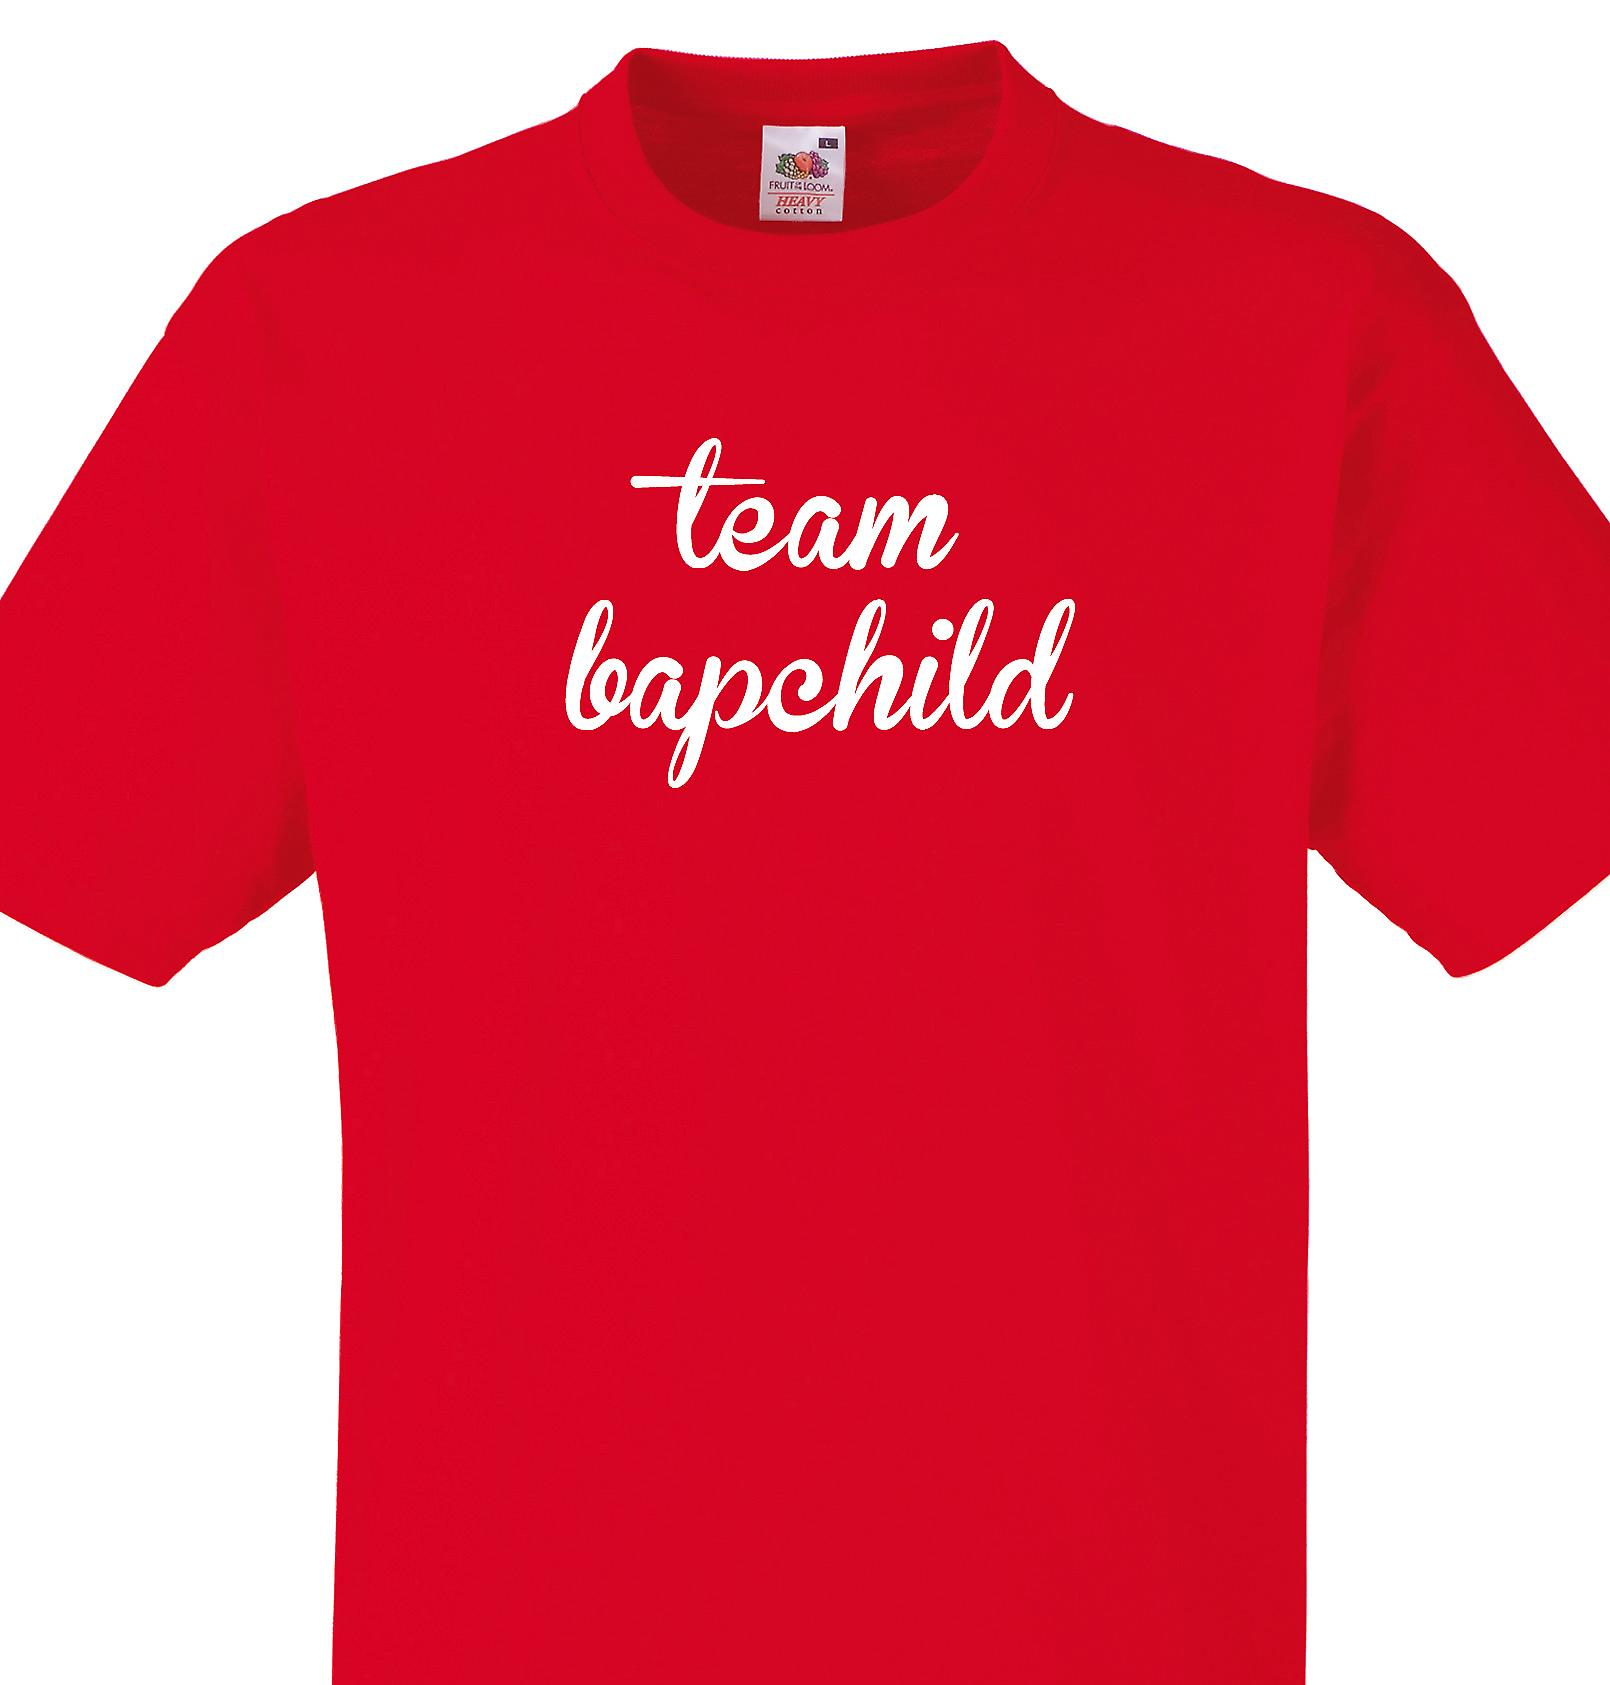 Team Bapchild Red T shirt